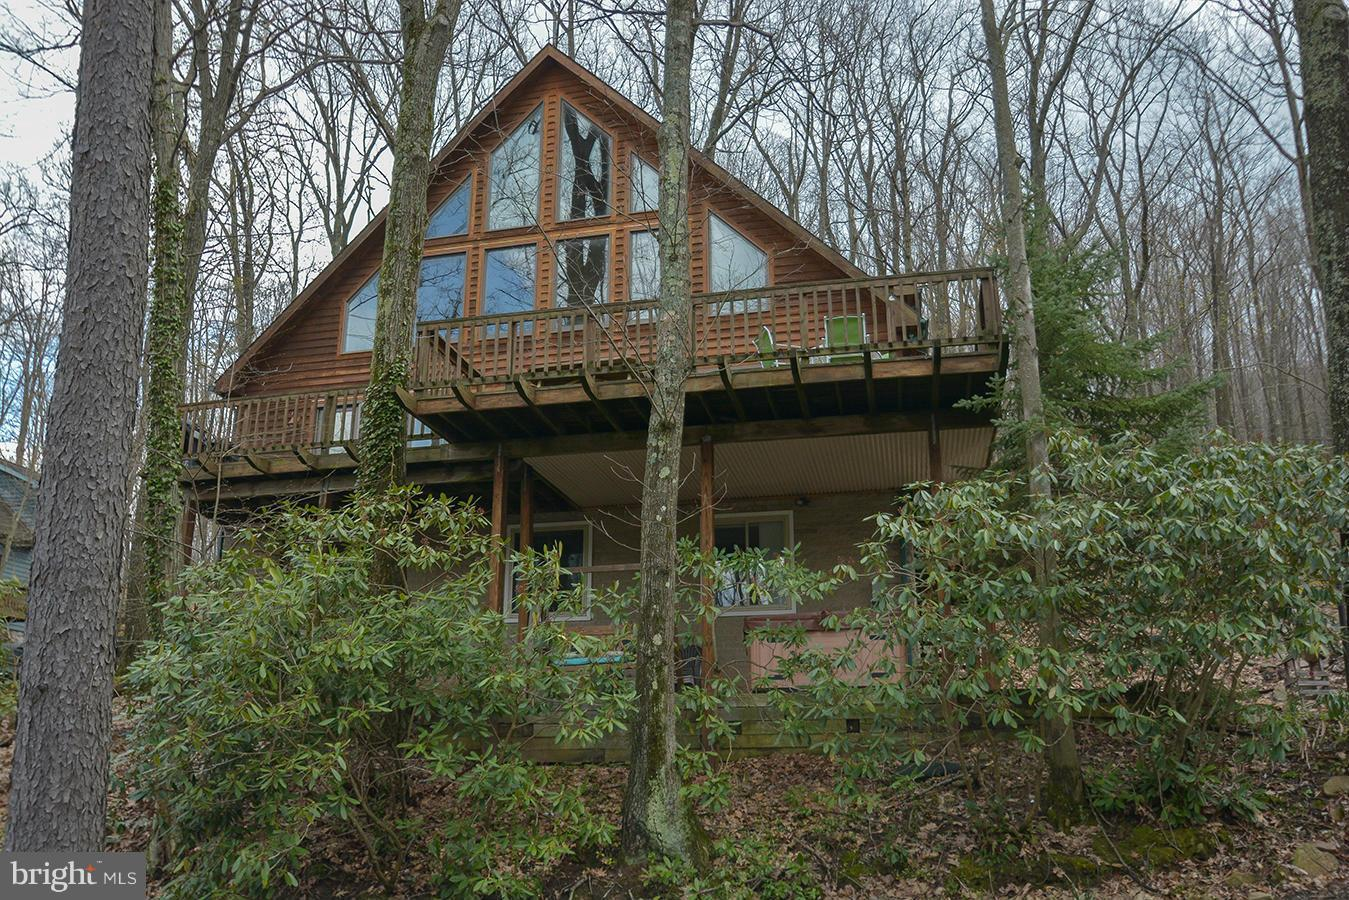 2602 STATE PARK ROAD, SWANTON, MD 21561